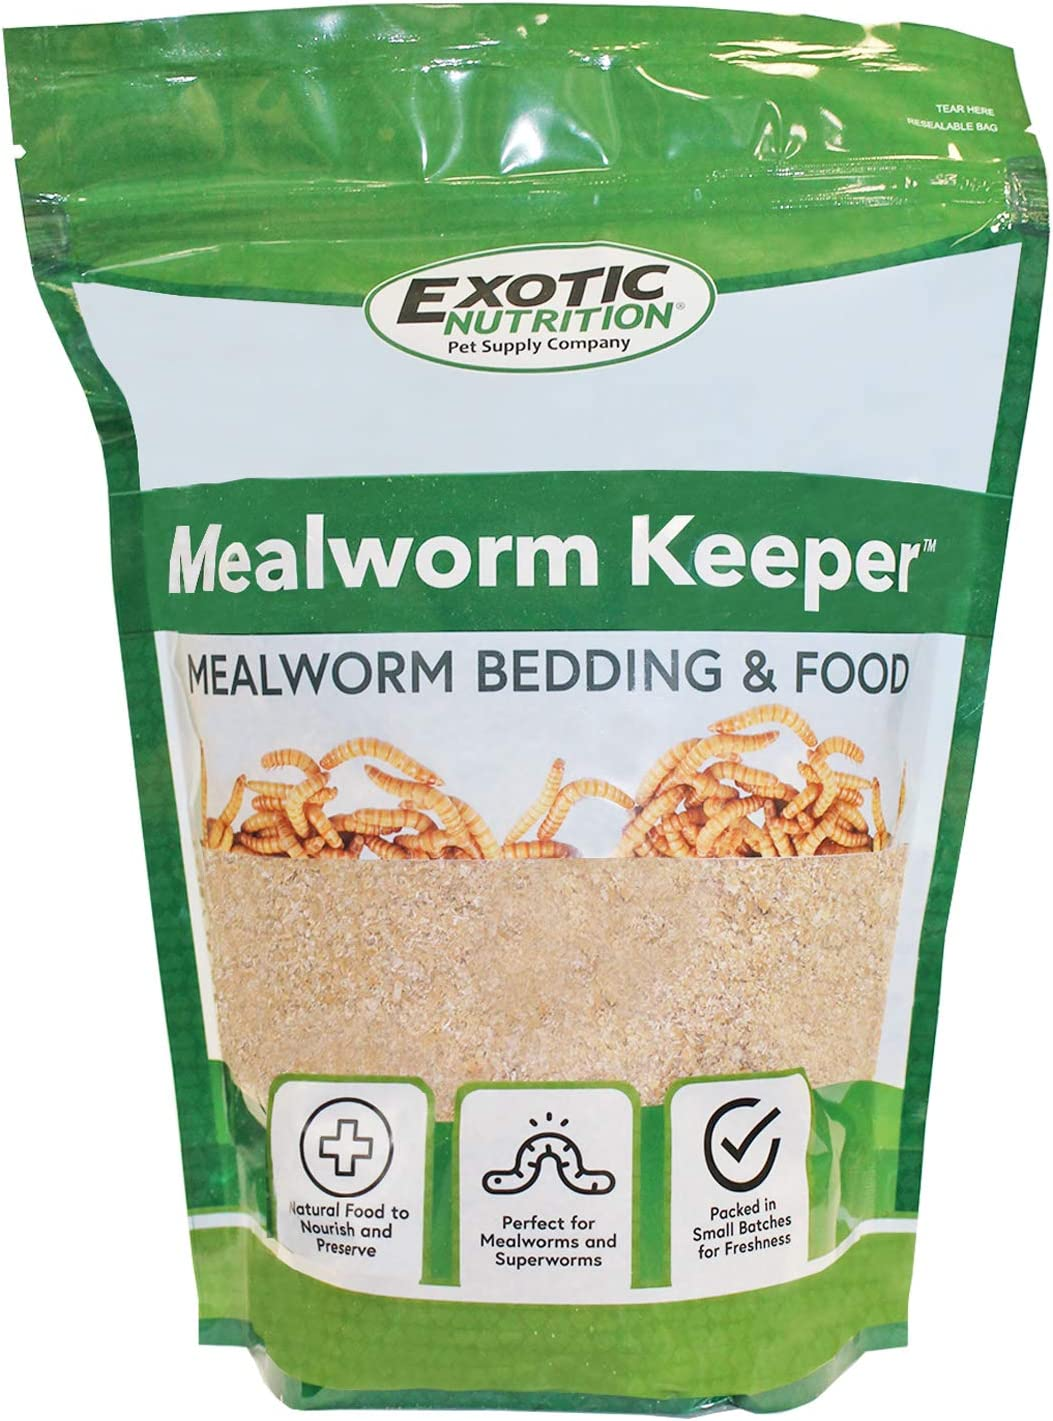 Exotic Nutrition Mealworm Keeper 1 lb. - Healthy Bedding & Feed for Breeding Live Feeder Mealworms